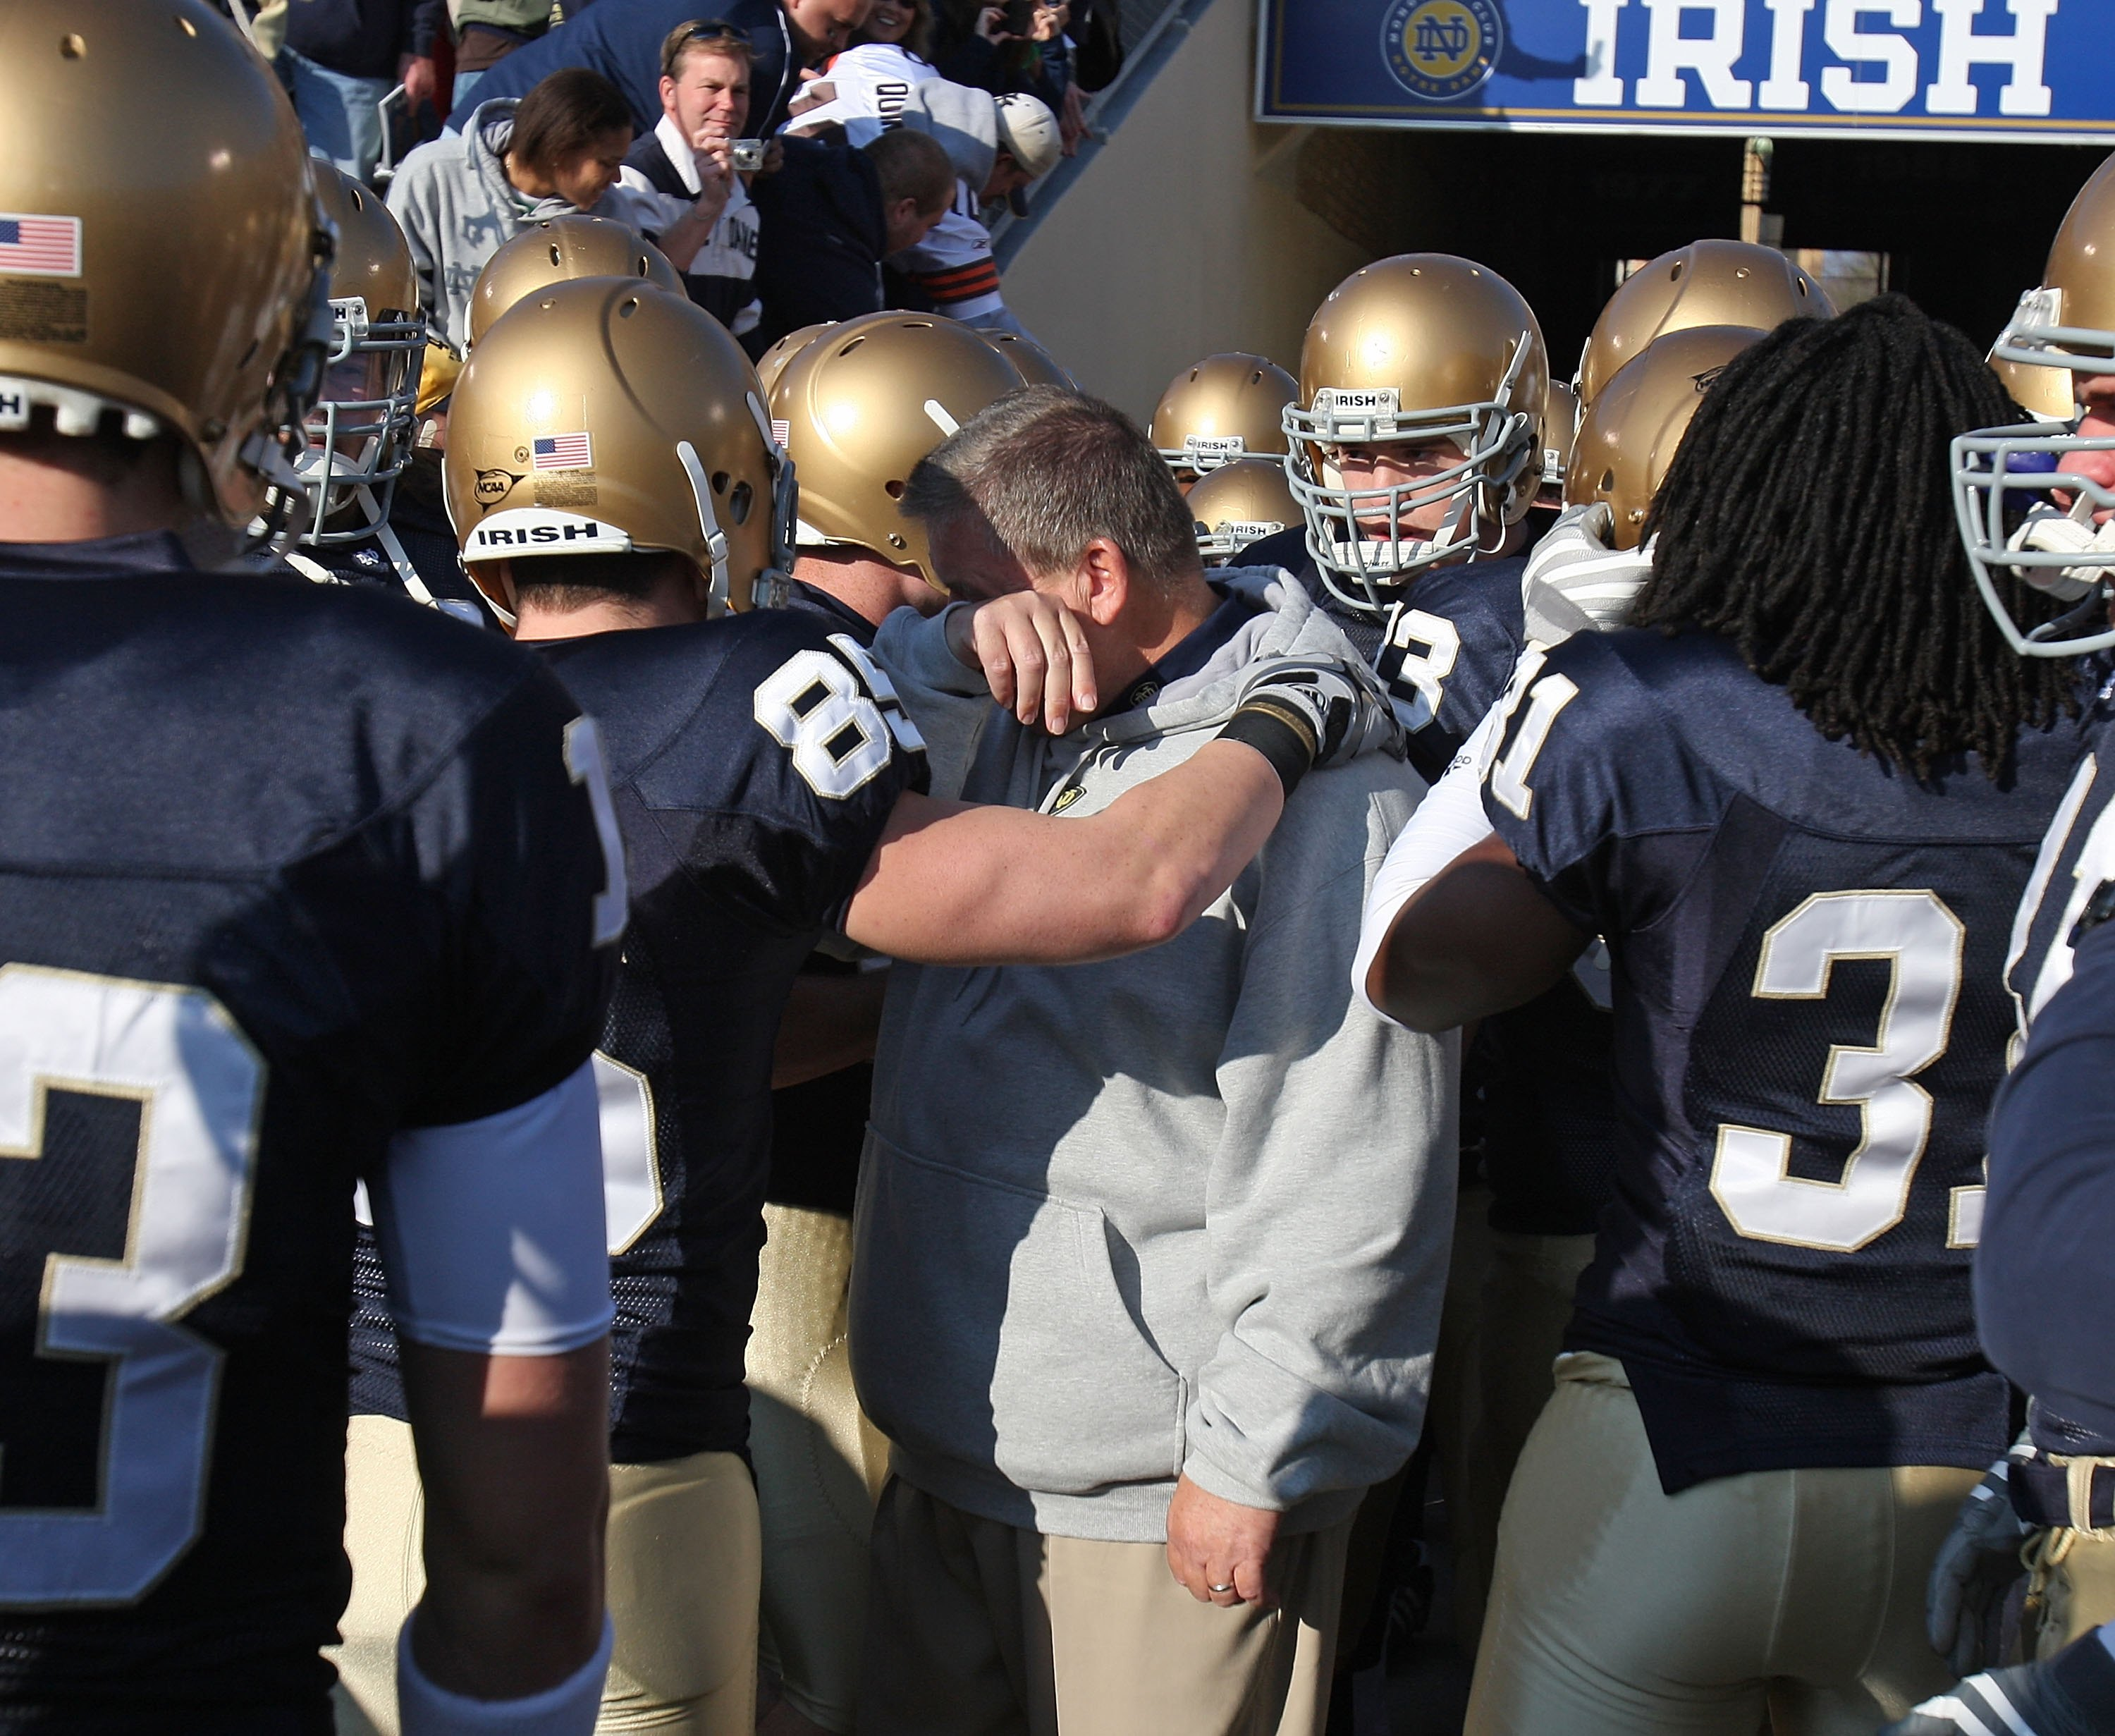 SOUTH BEND, IN - NOVEMBER 21: Head coach Charlie Weis of the Notre Dame Fighting Irish wipes a tear from his eye before lining up to enter the field for a game against the University of Connecticut Huskies at Notre Dame Stadium on November 21, 2009 in Sou